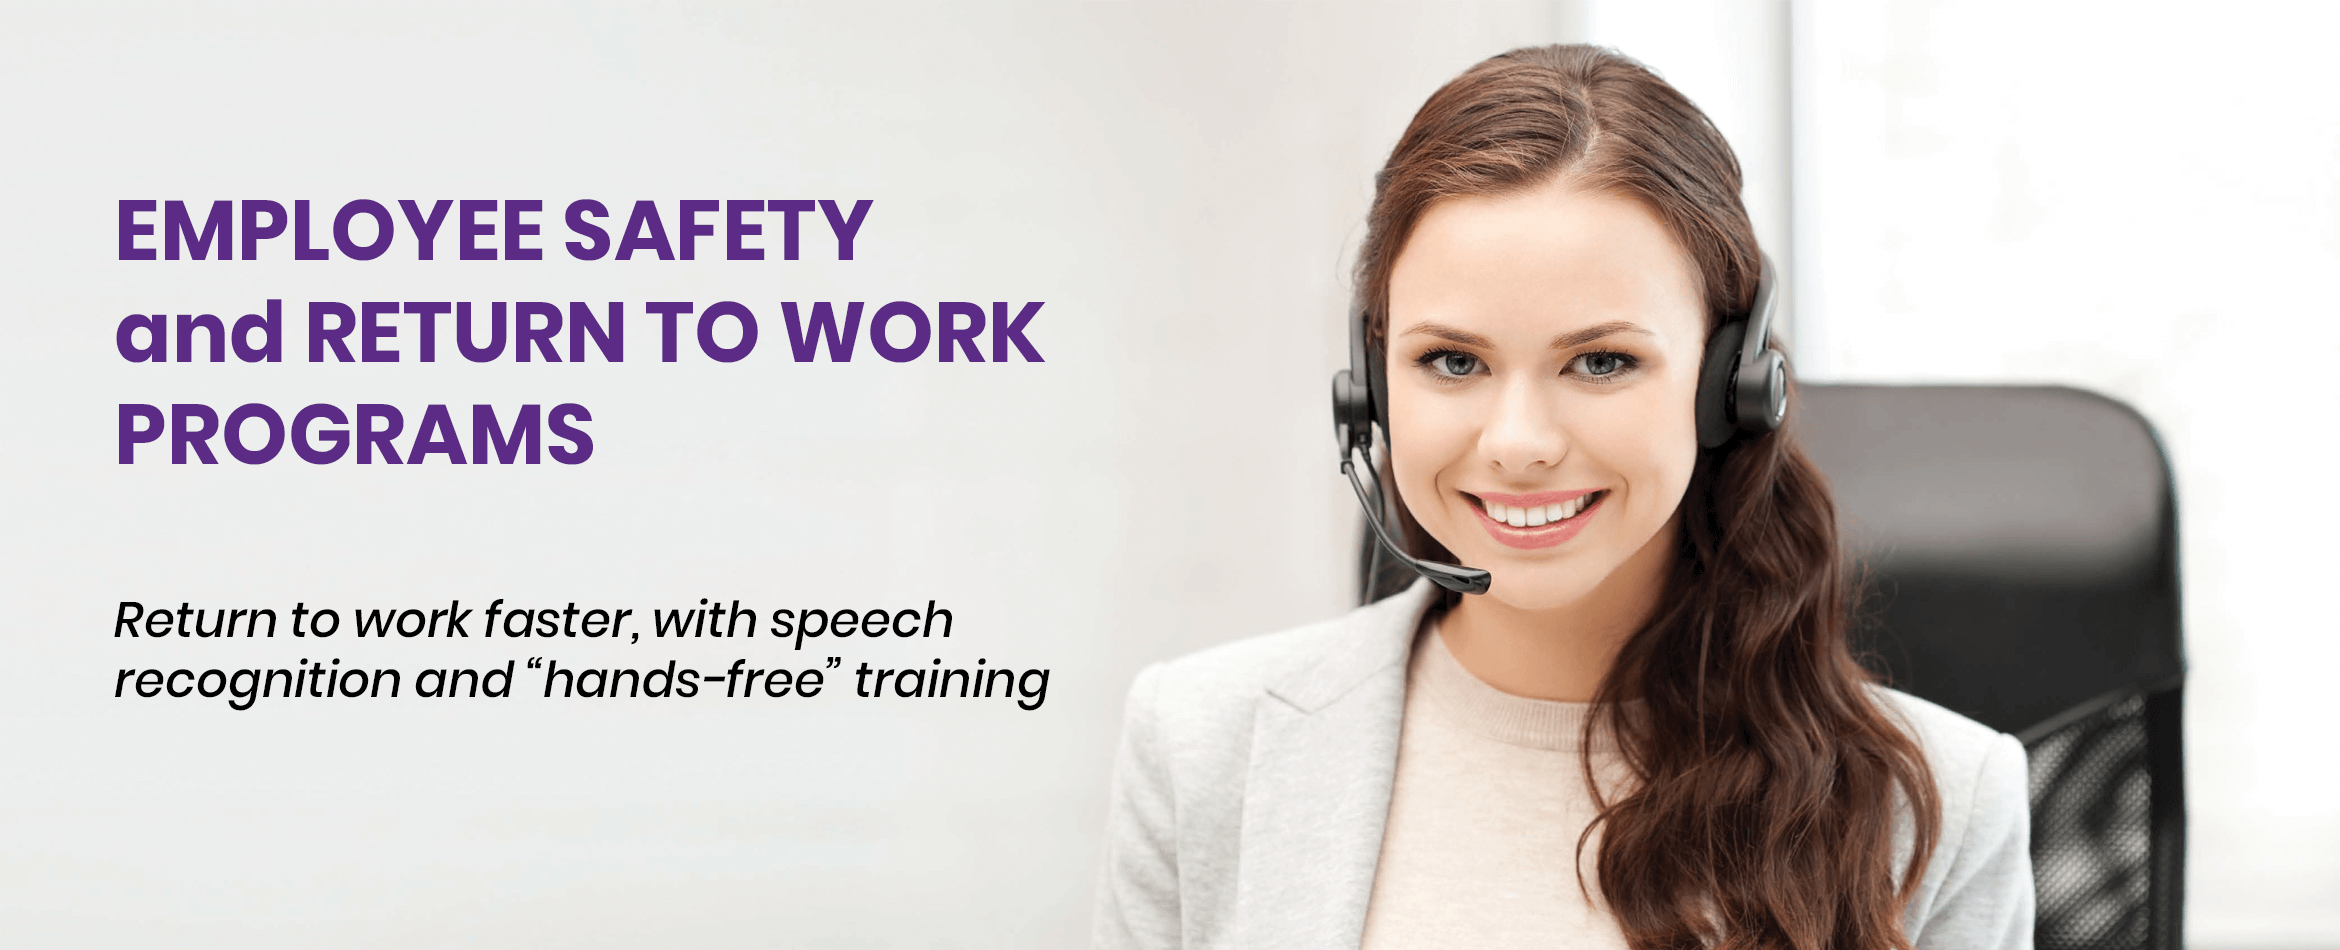 Employee Safety and Return to Work Programs - Return to work faster, with speech recognition and hands-free training.